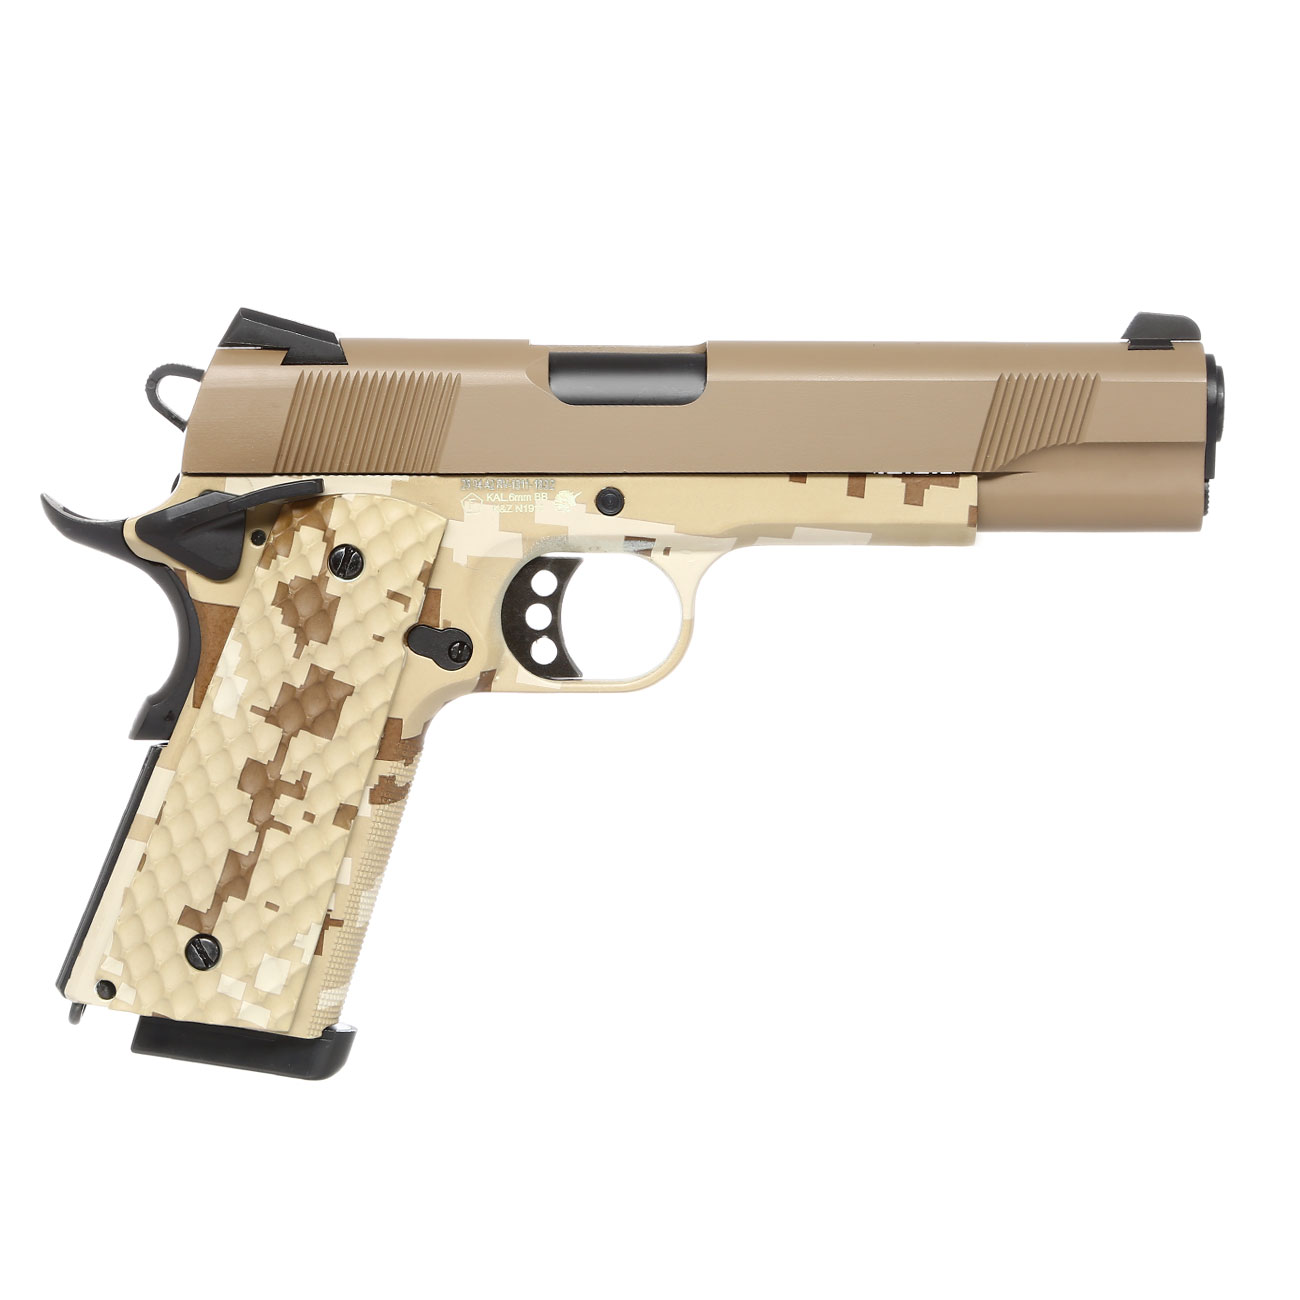 Nuprol Raven M1911 MEU Vollmetall GBB 6mm BB Tan / Digital Desert 3